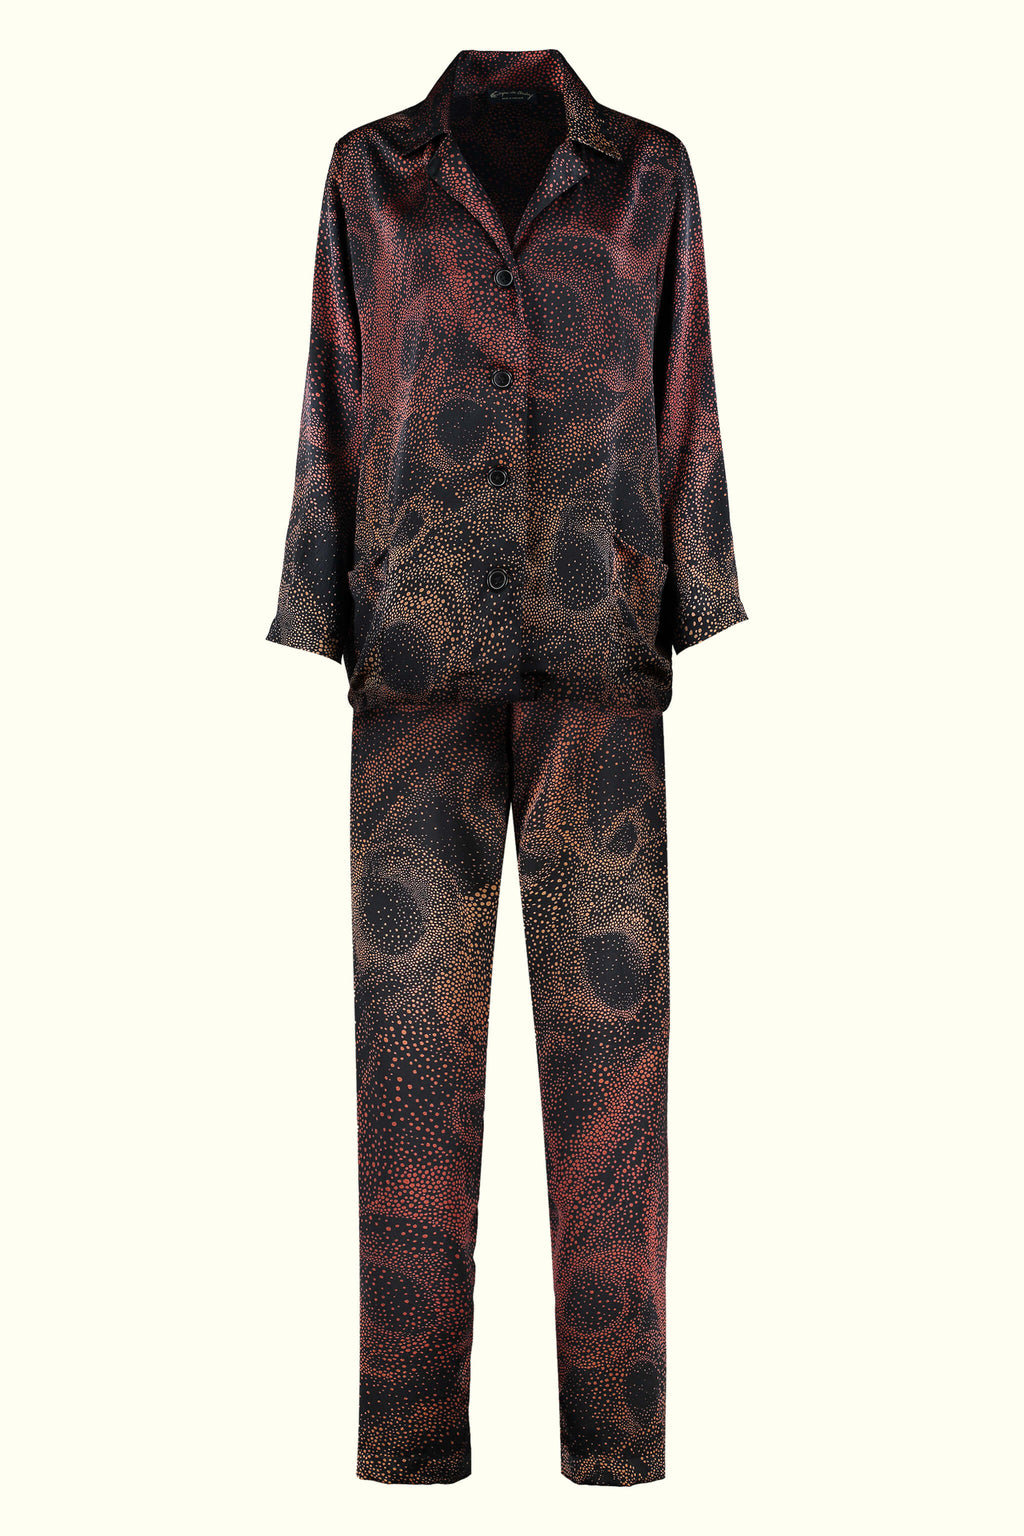 A luxury British silk pyjama set by GVE in black and red Aurora print design.